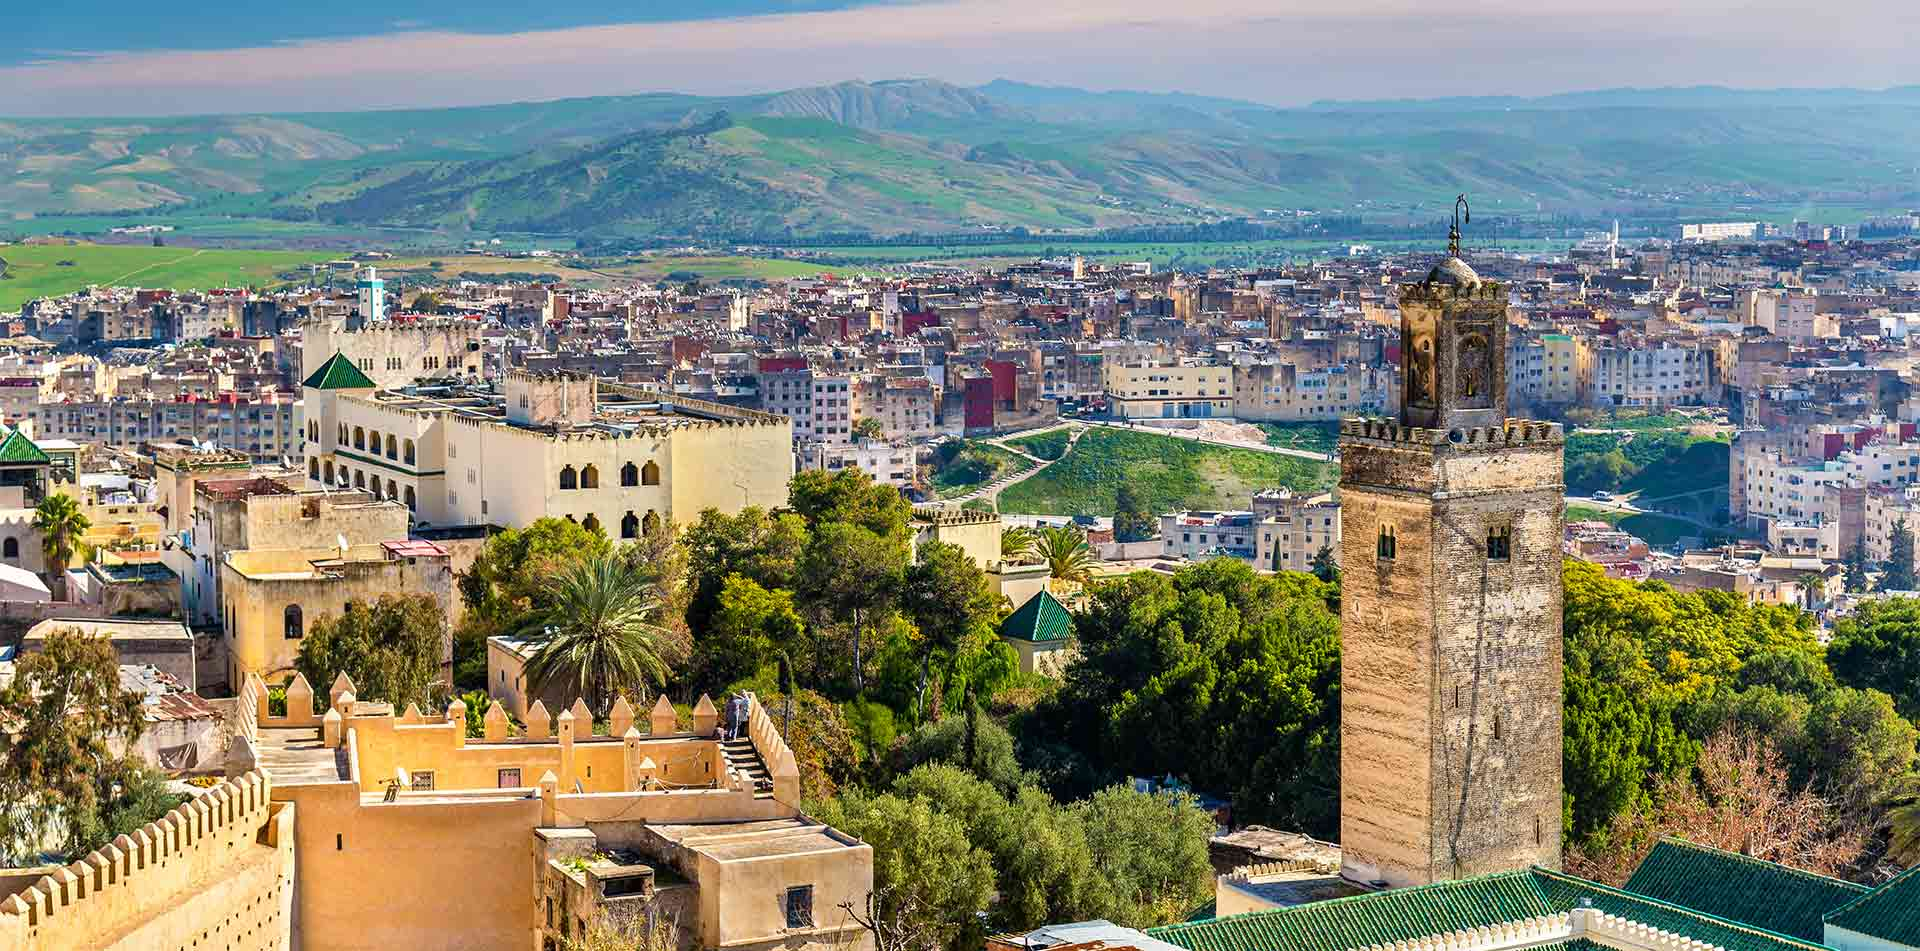 Africa Morocco Fes scenic walled city view of historic Bab Guissa Mosque and gate - luxury vacation destinations